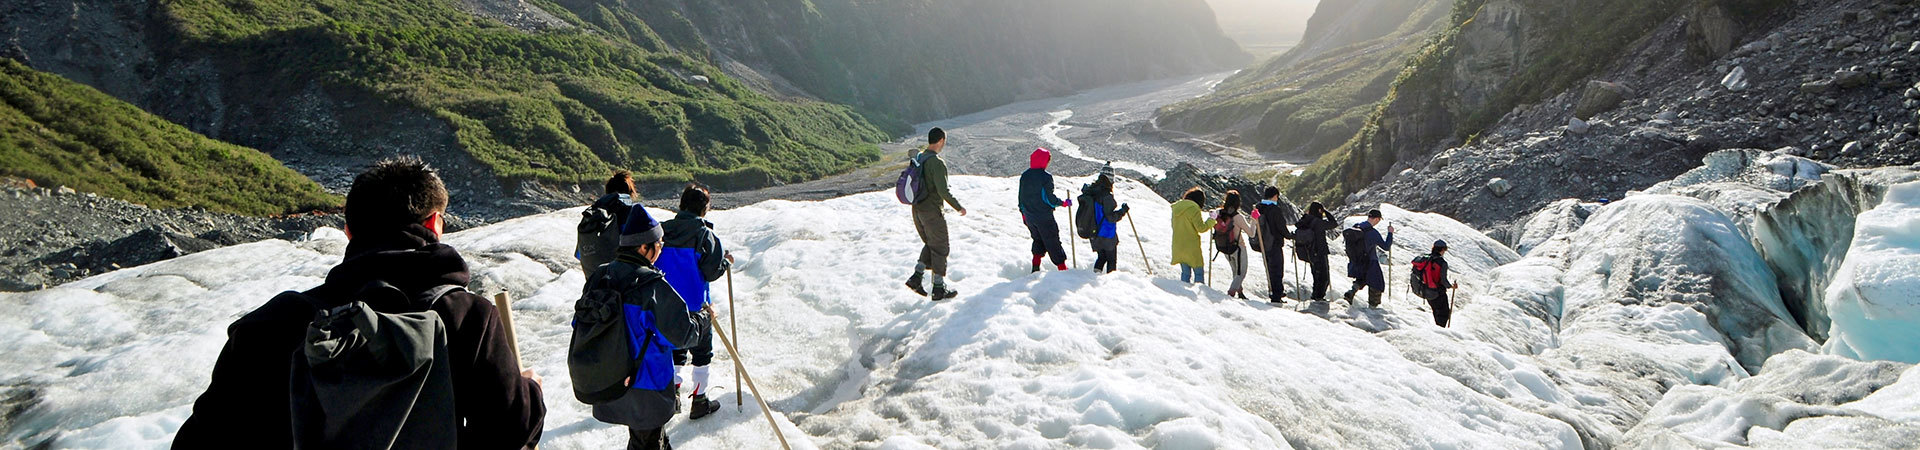 Group exploring the glaciers South Island New Zealand